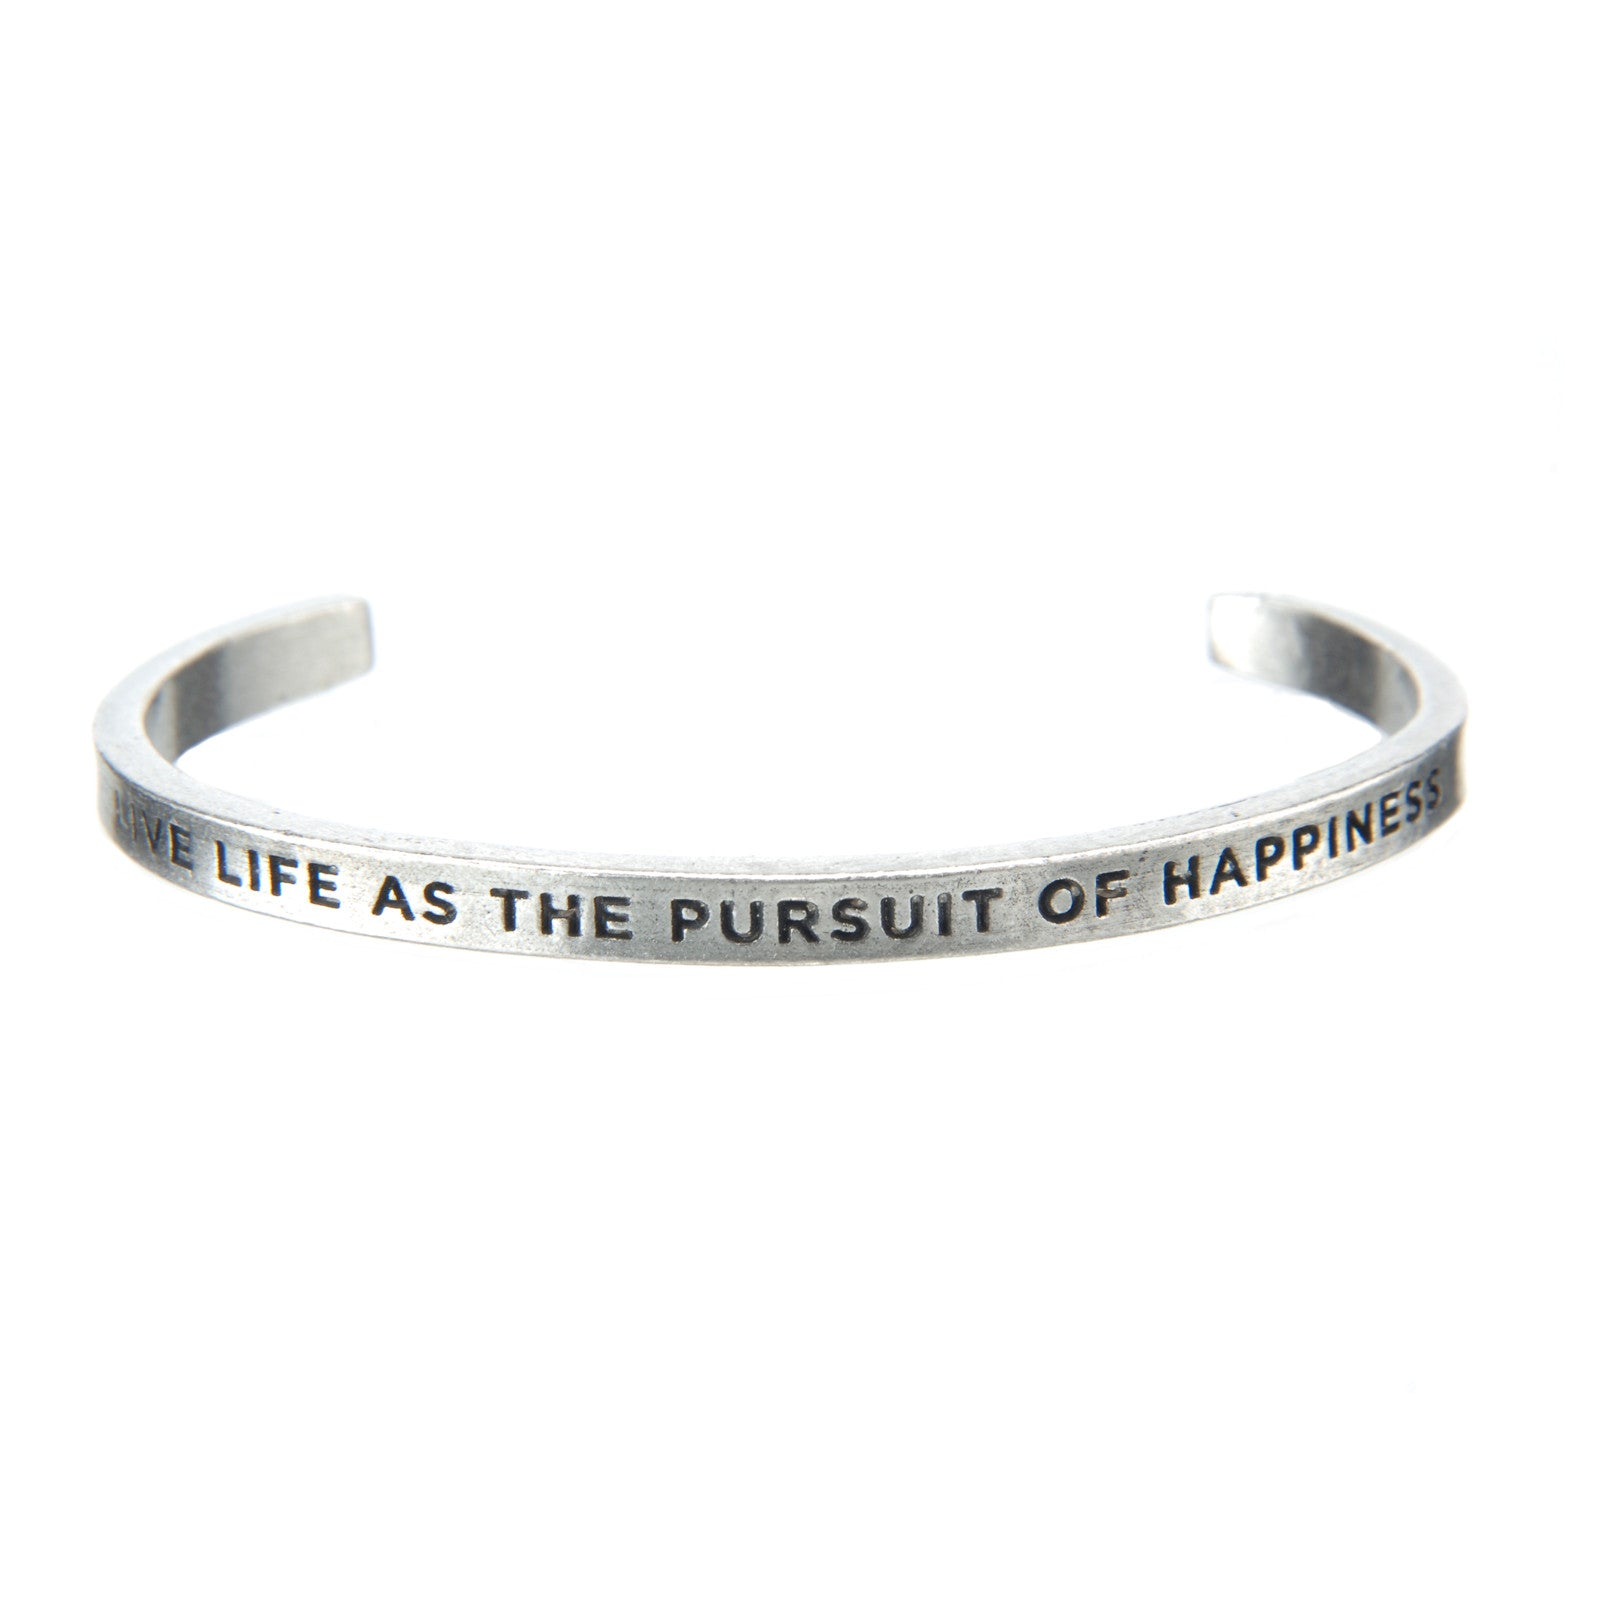 Live Life as the Pursuit of Happiness Quotable Cuff Bracelet - Whitney Howard Designs